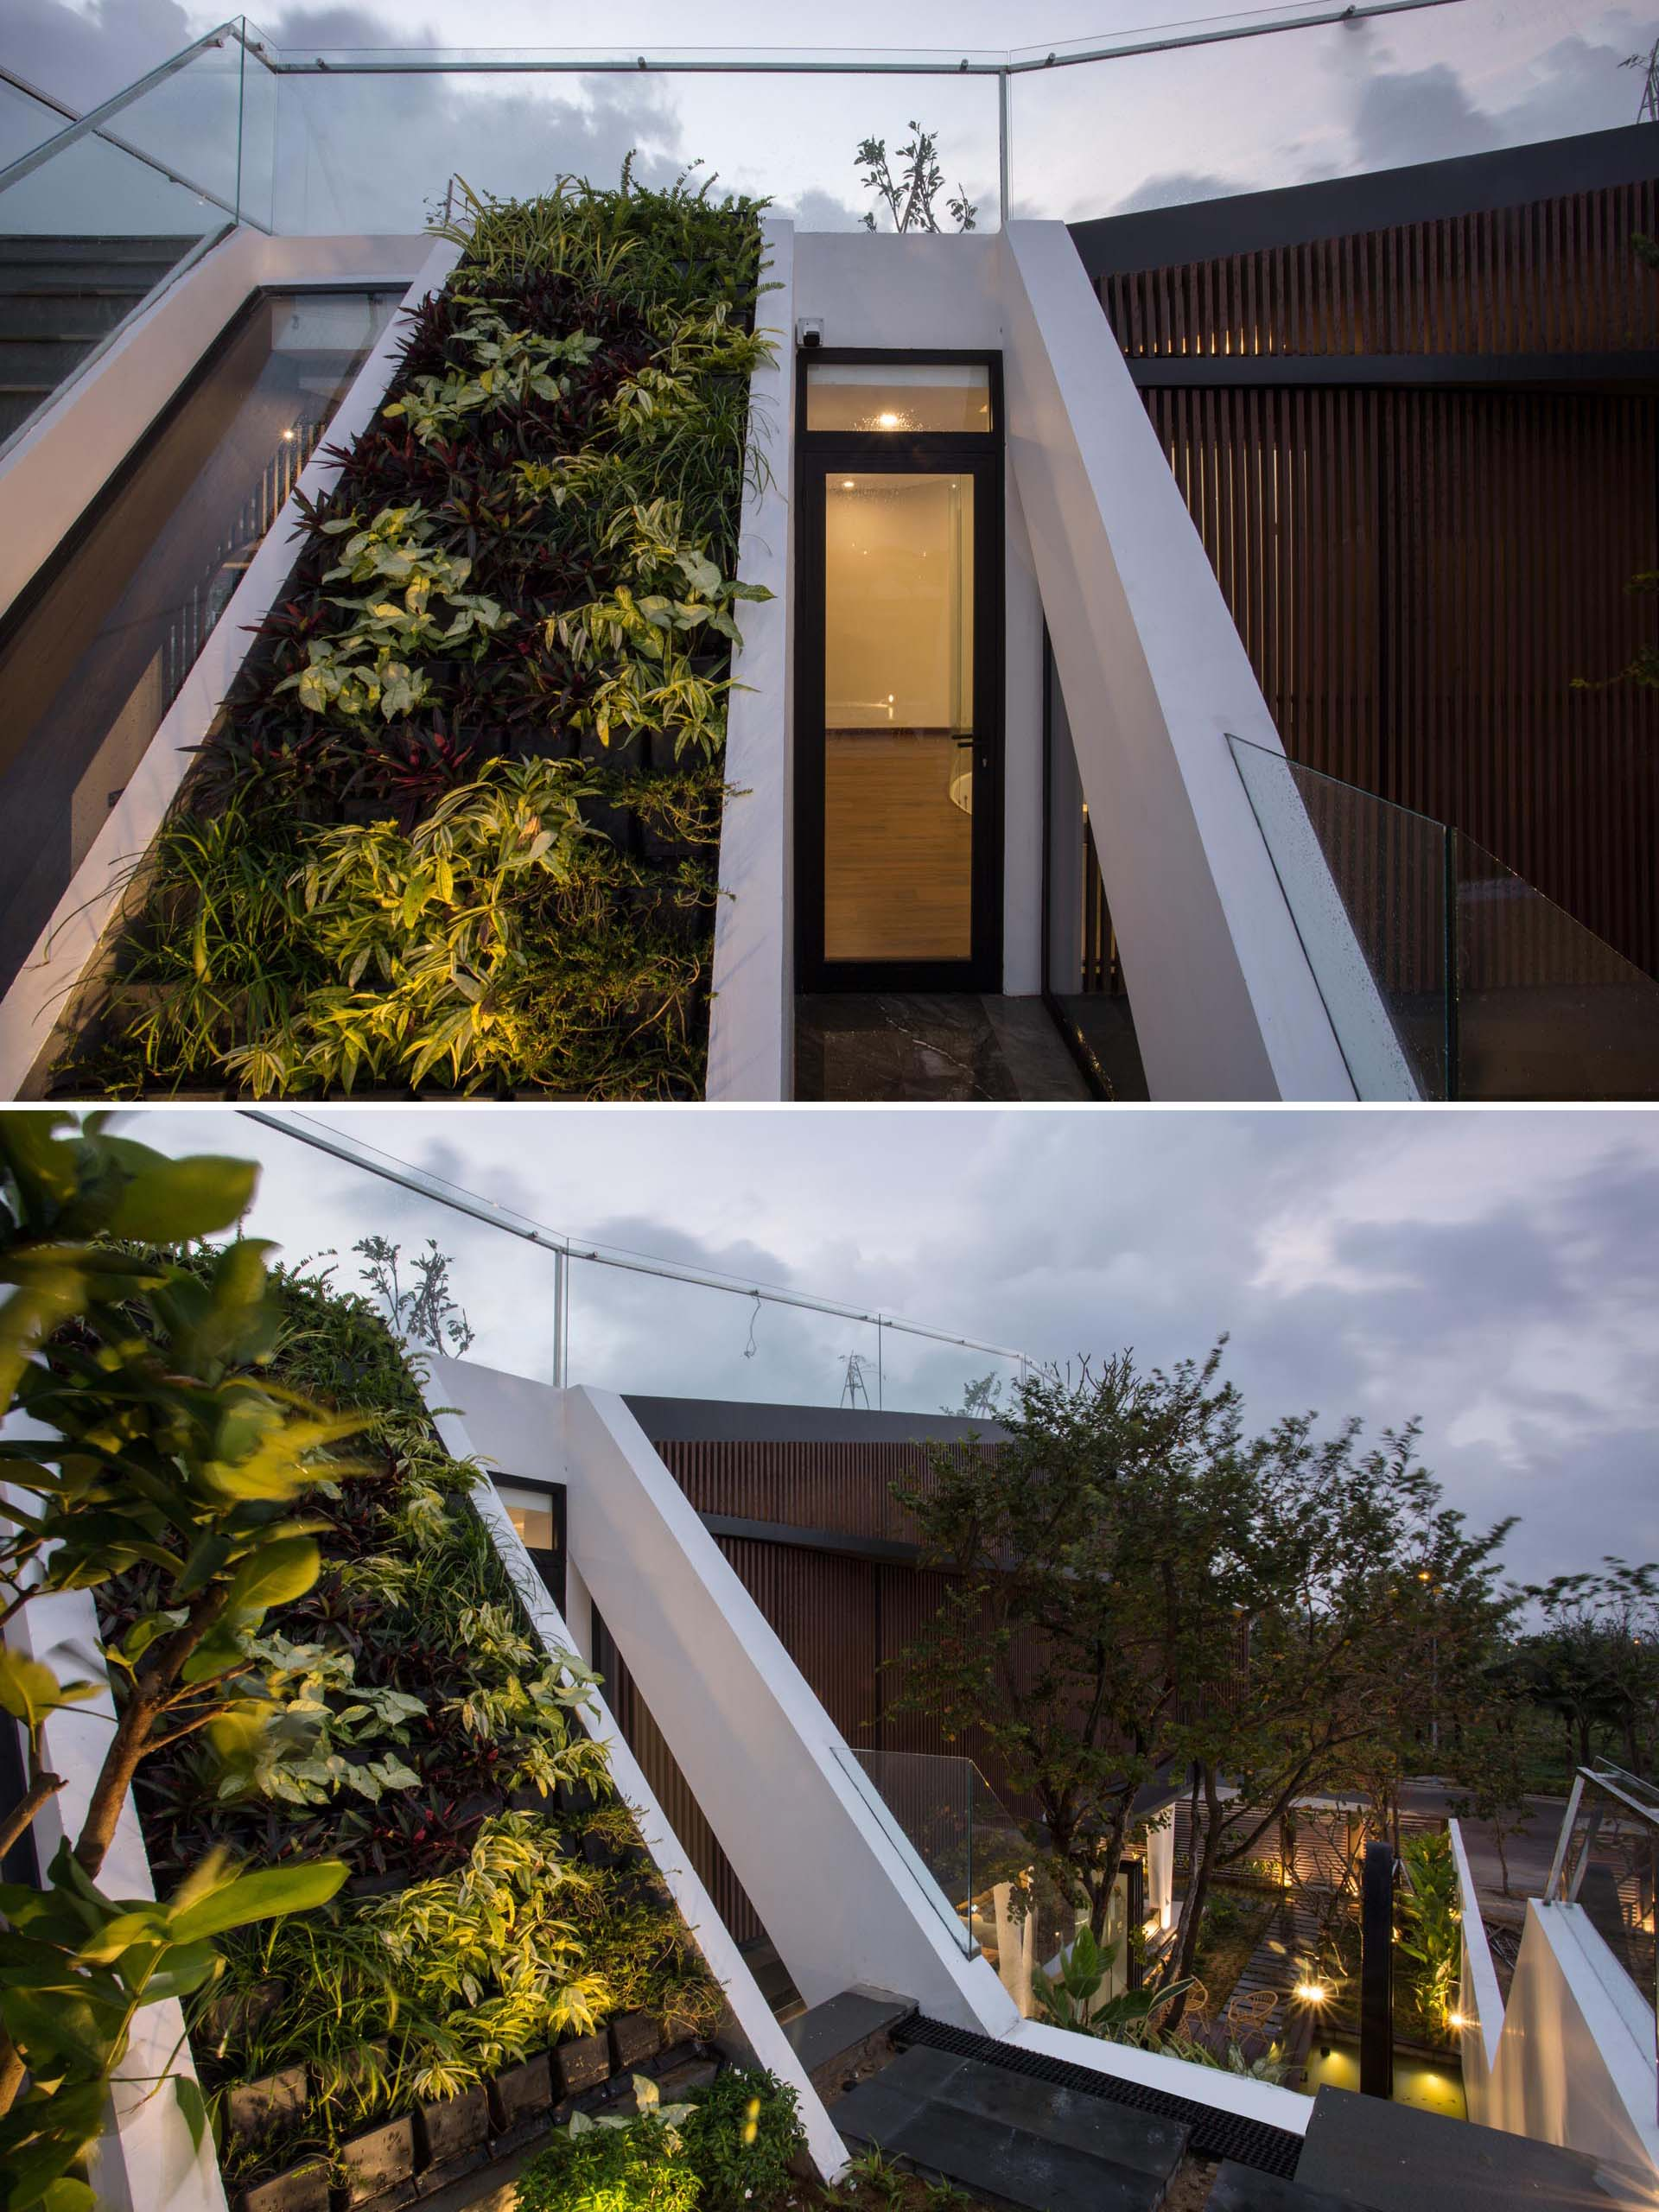 A modern home has exterior stairs that run alongside a heavily planted sloped section and a glass railing.